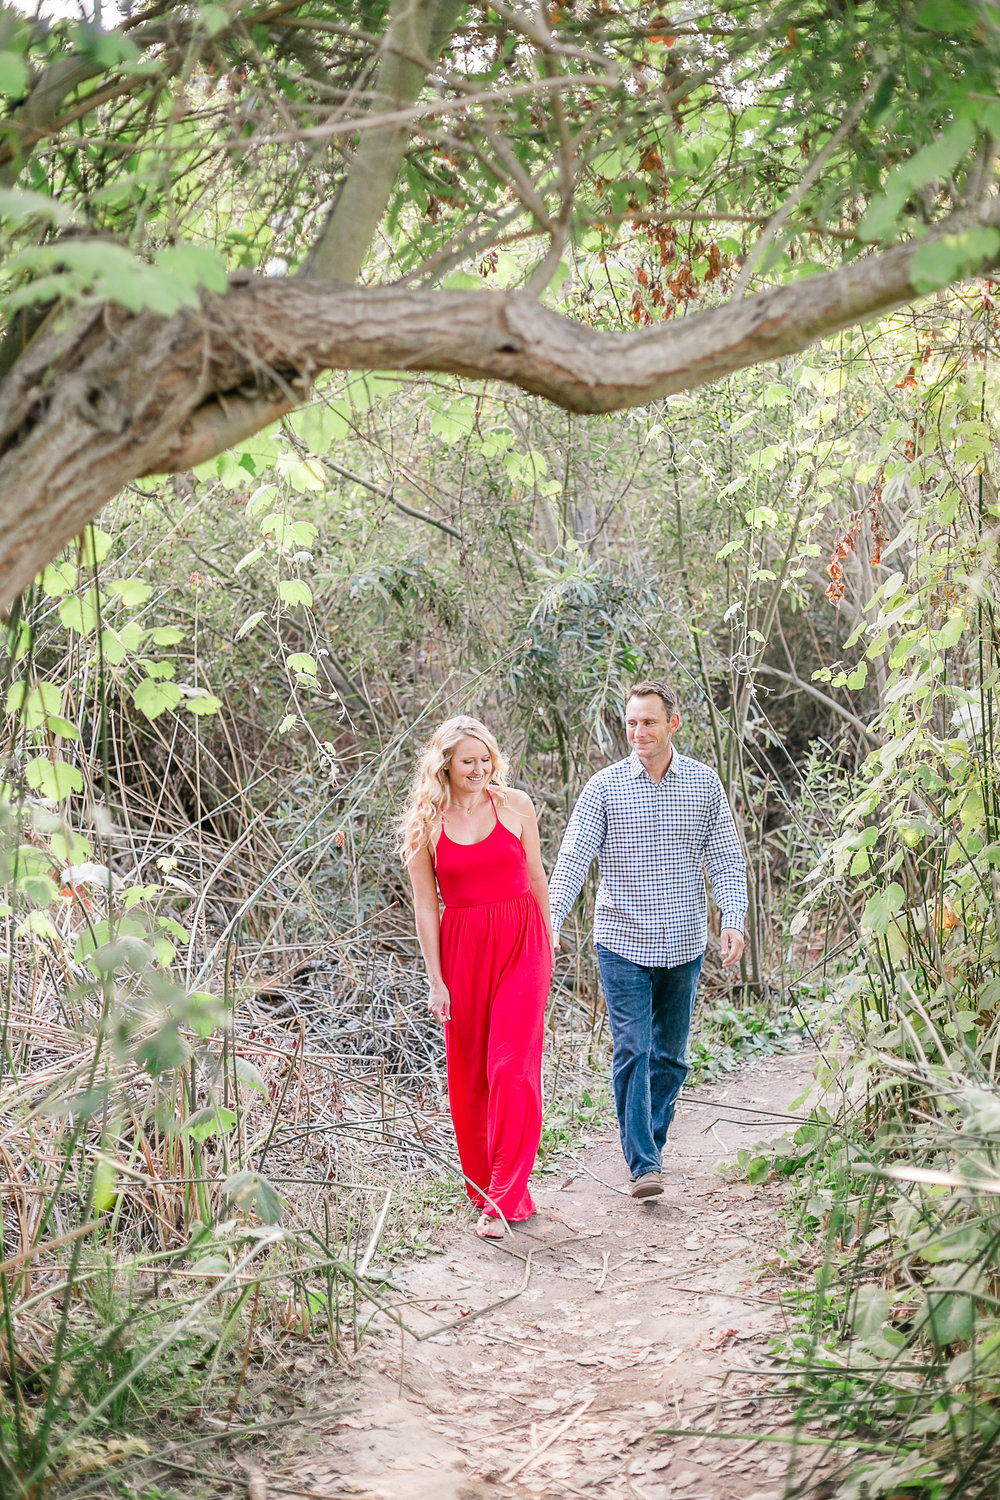 Heather_Smith_&_Chad_Patteson_San_Elijo_Lagoon_Solana_beach_Engagment_Session_2017-1.jpg